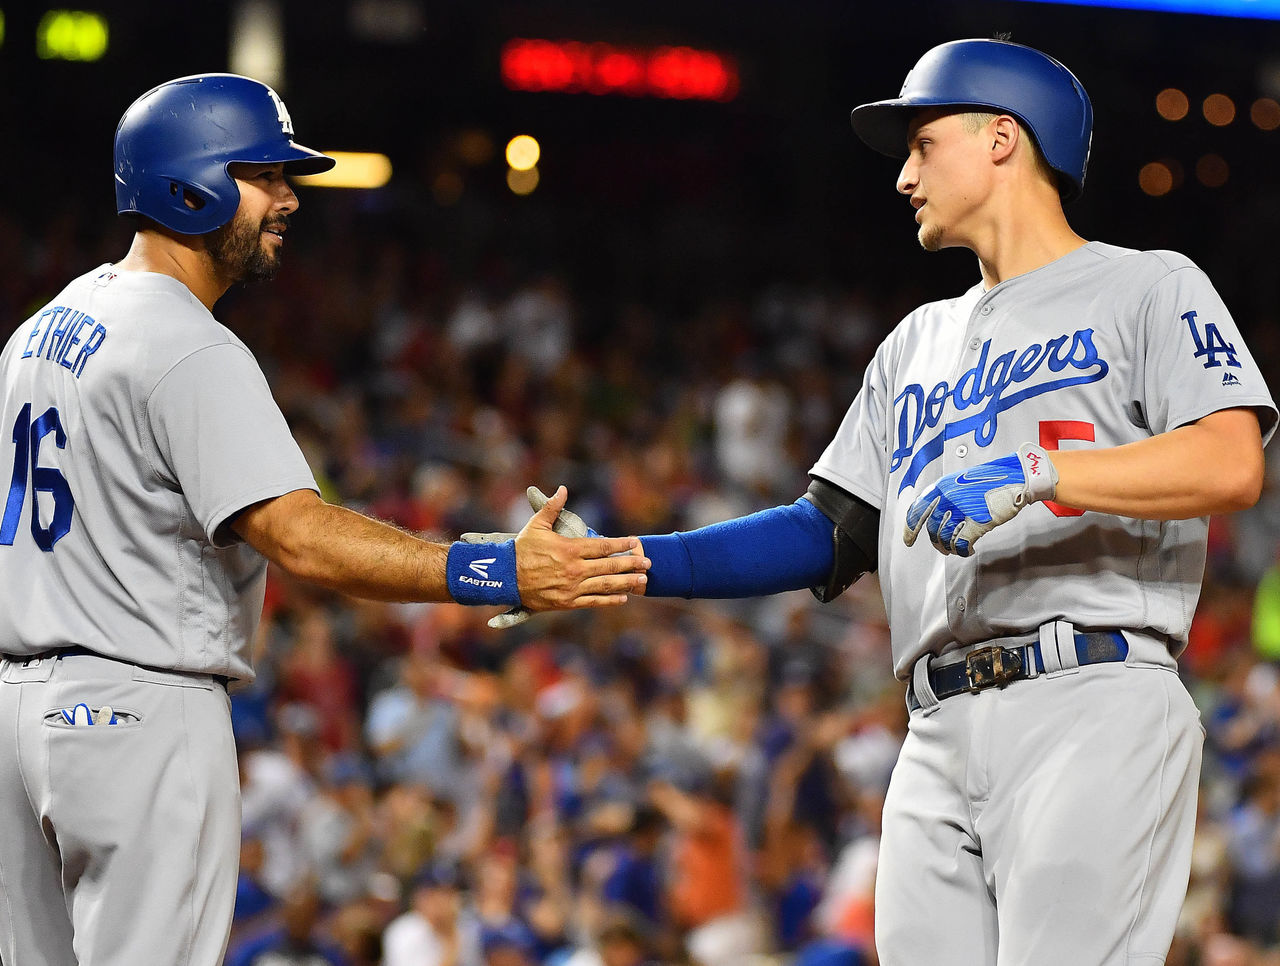 Cropped_2017-09-16t001641z_1669033948_nocid_rtrmadp_3_mlb-los-angeles-dodgers-at-washington-nationals